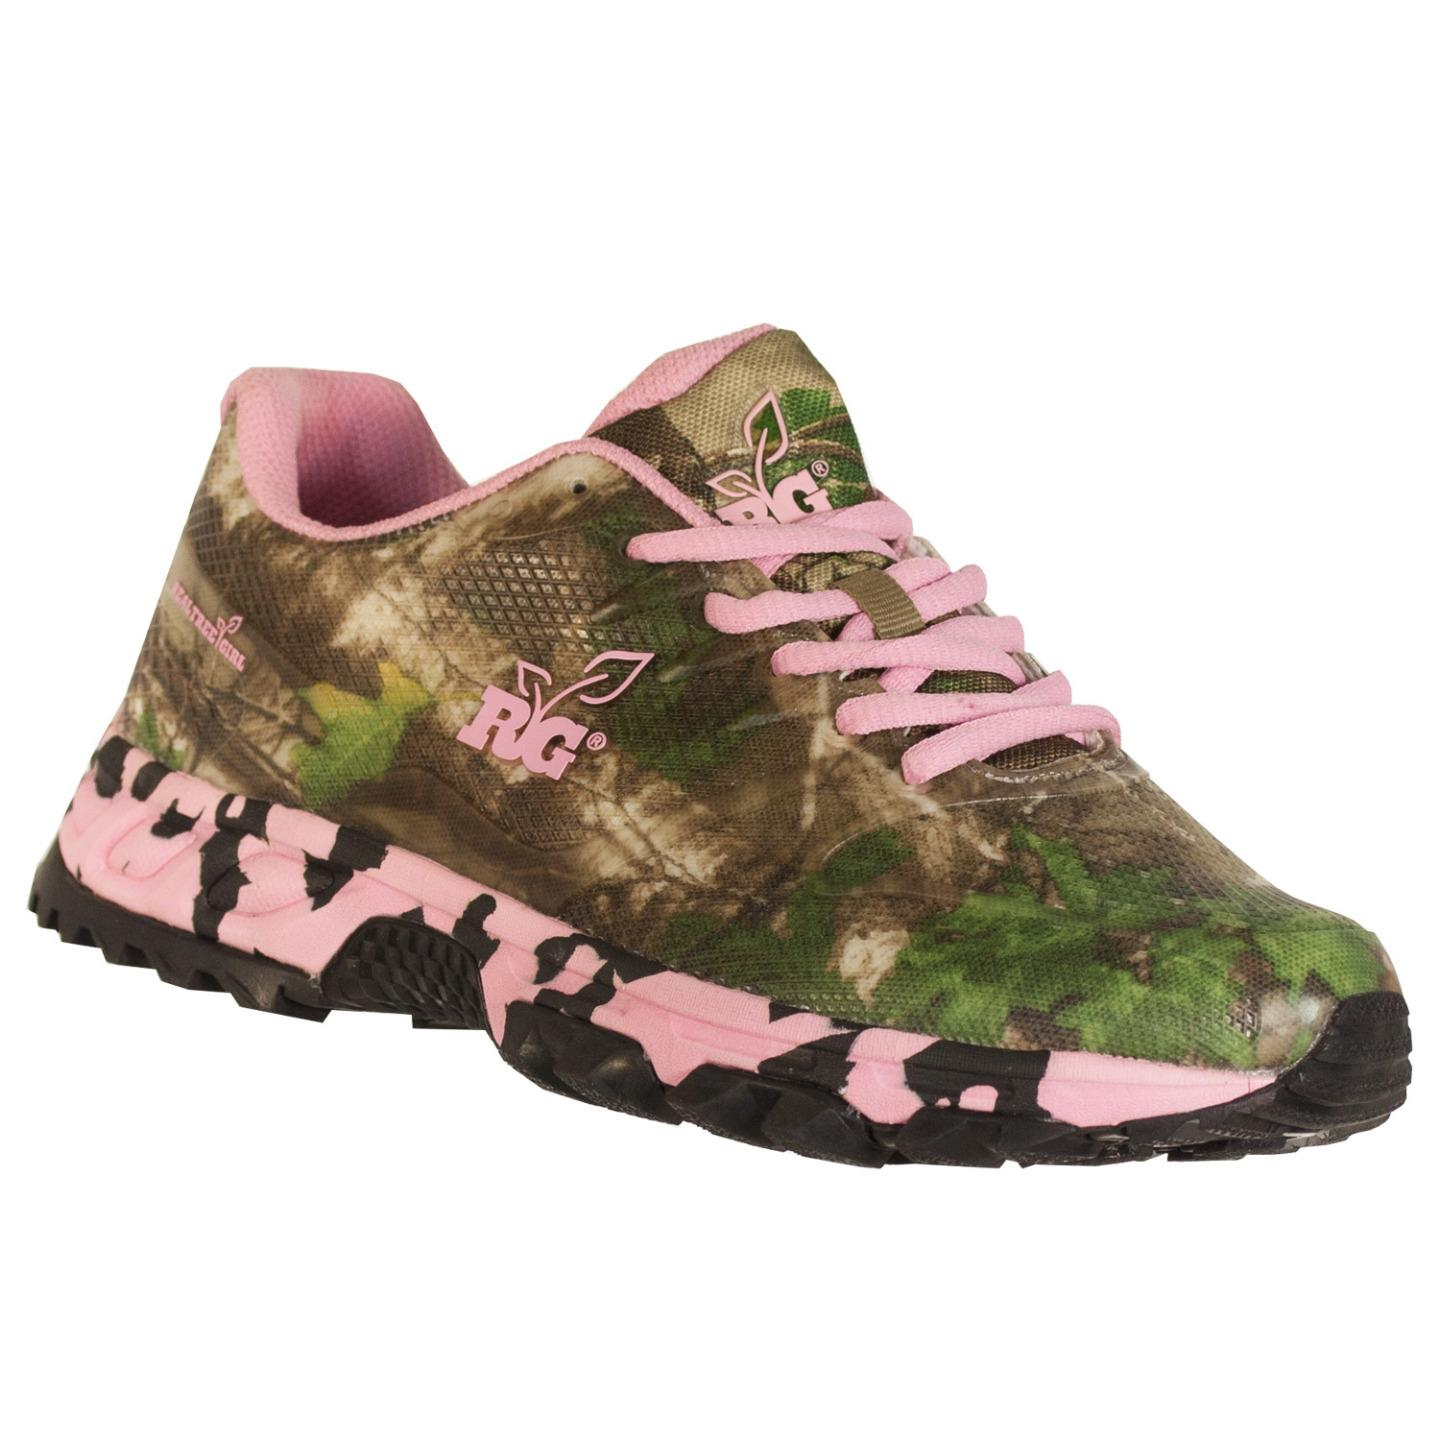 realtree outfitters s mamba hiking shoes pink green